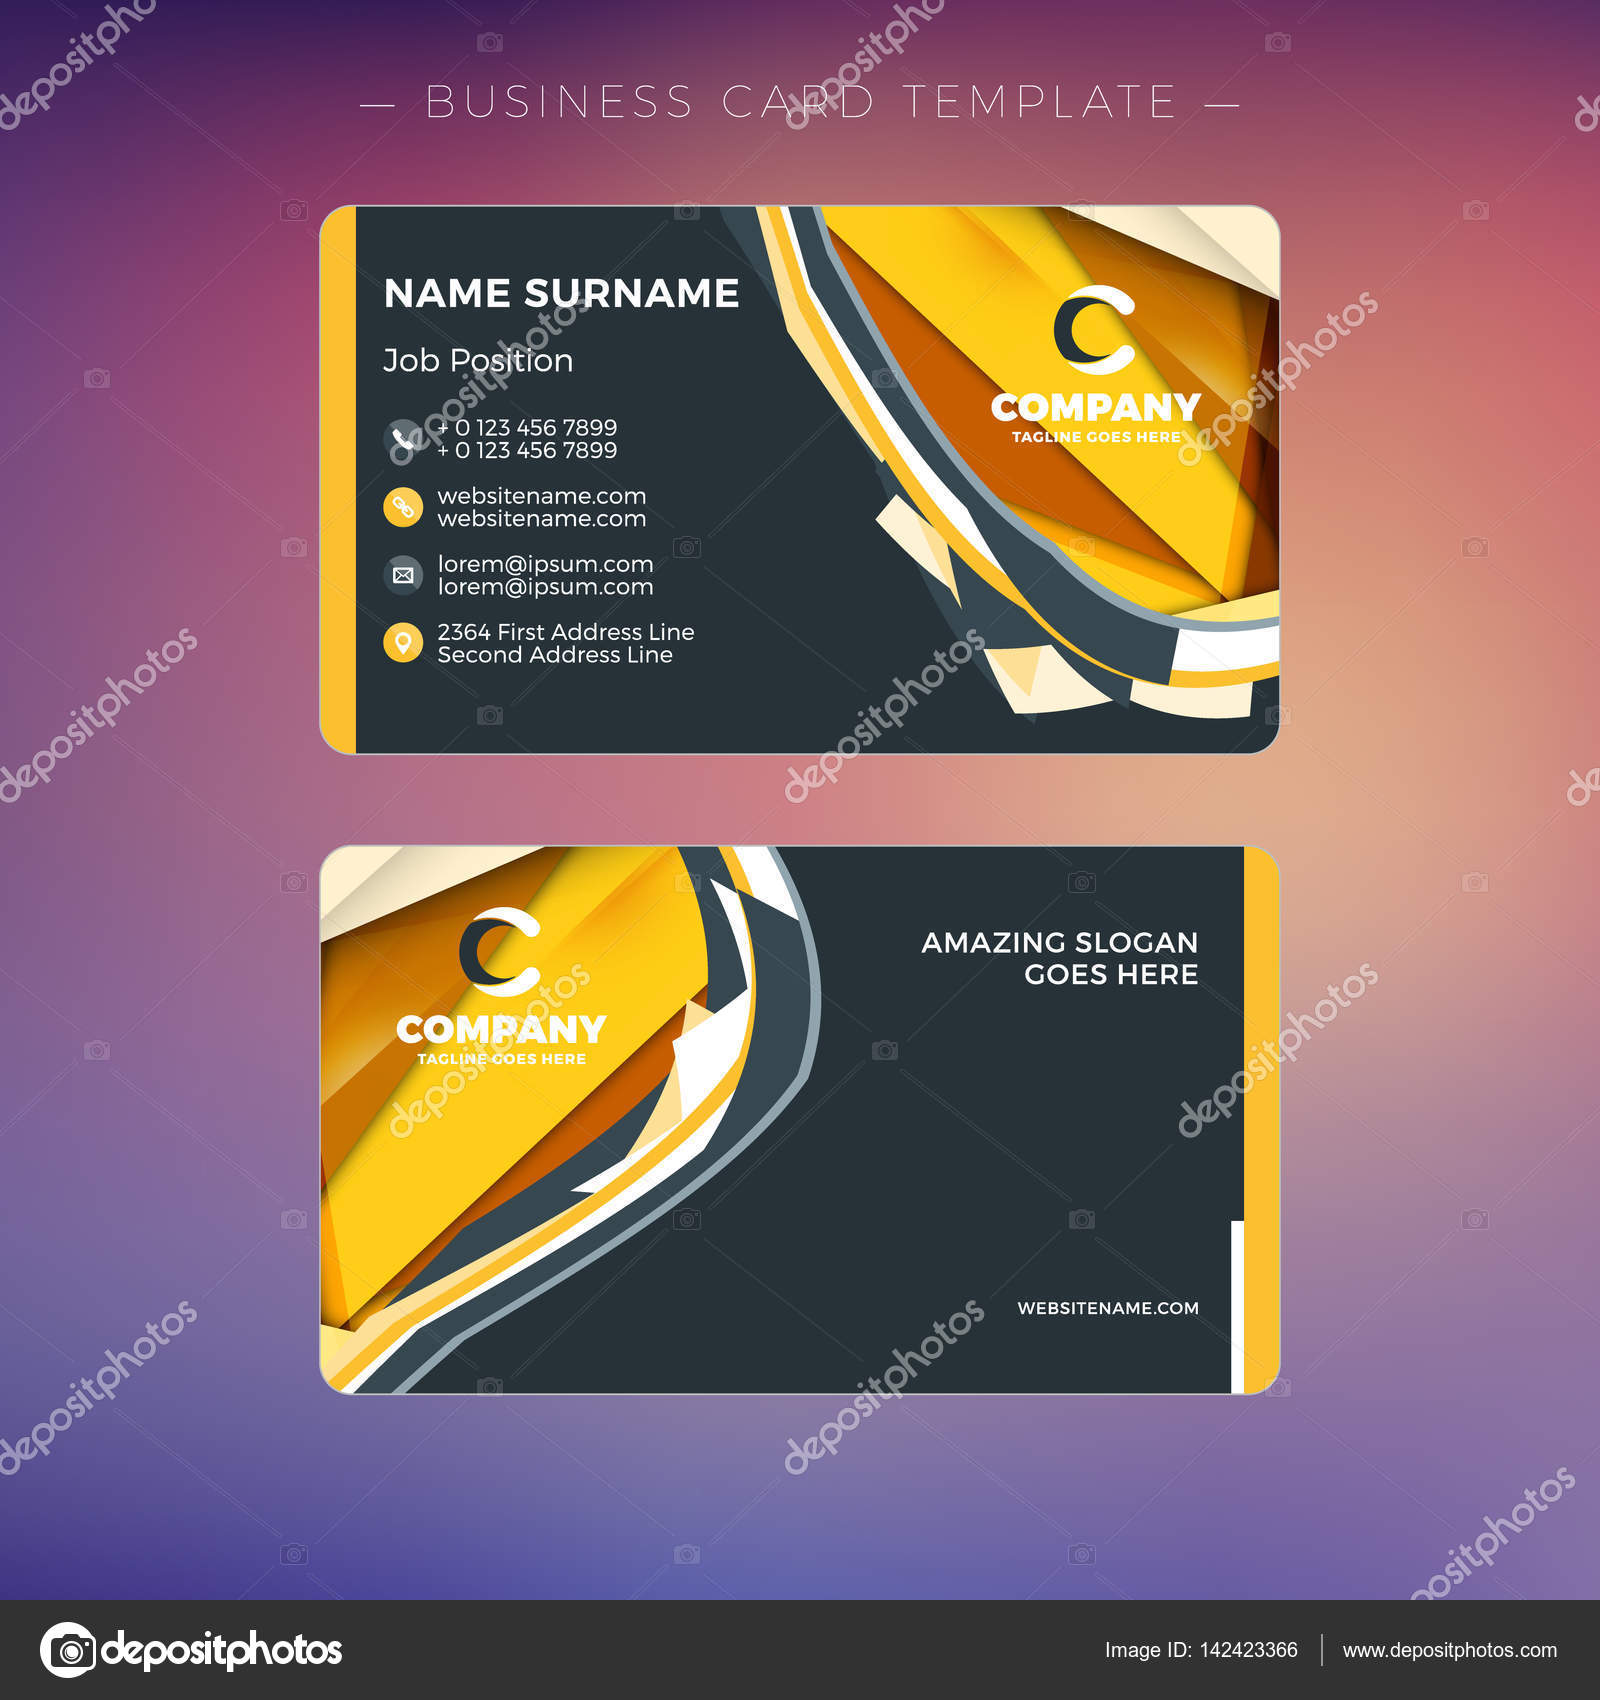 Creative business card template with abstract background vector creative business card template with abstract background vector illustration stationery design stock vector flashek Choice Image